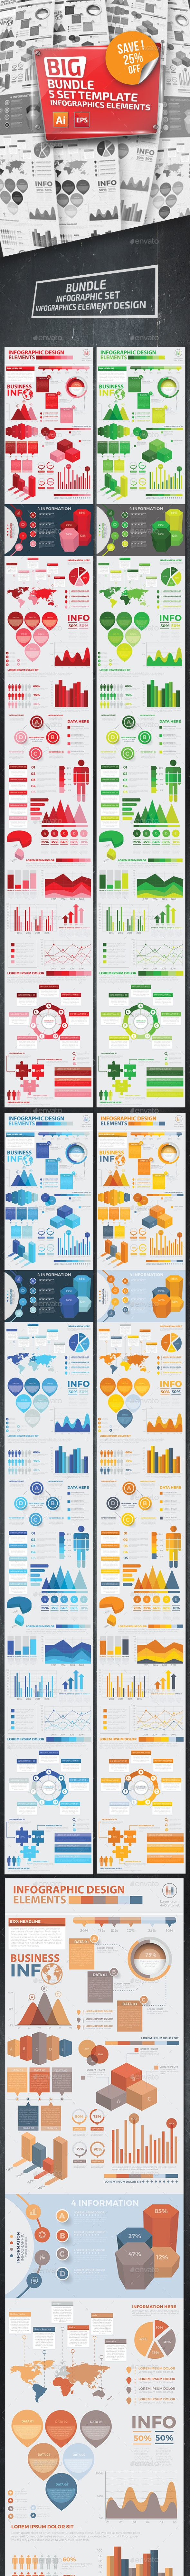 Bundle 5 Infographic Templates - Infographics